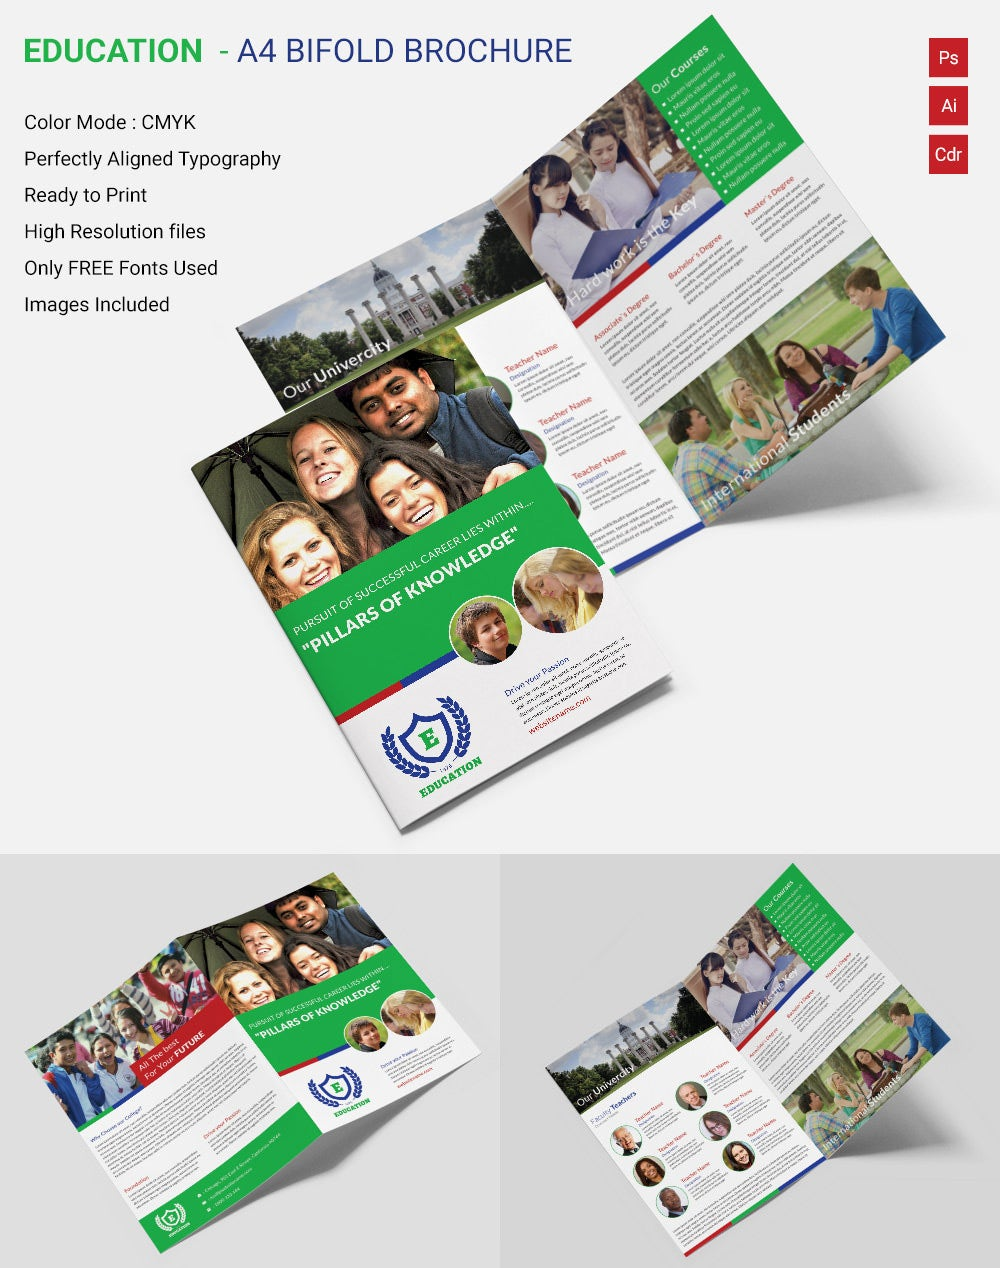 Innovative Education A Bi Fold Brochure Template Free Premium - Bi fold brochure template indesign